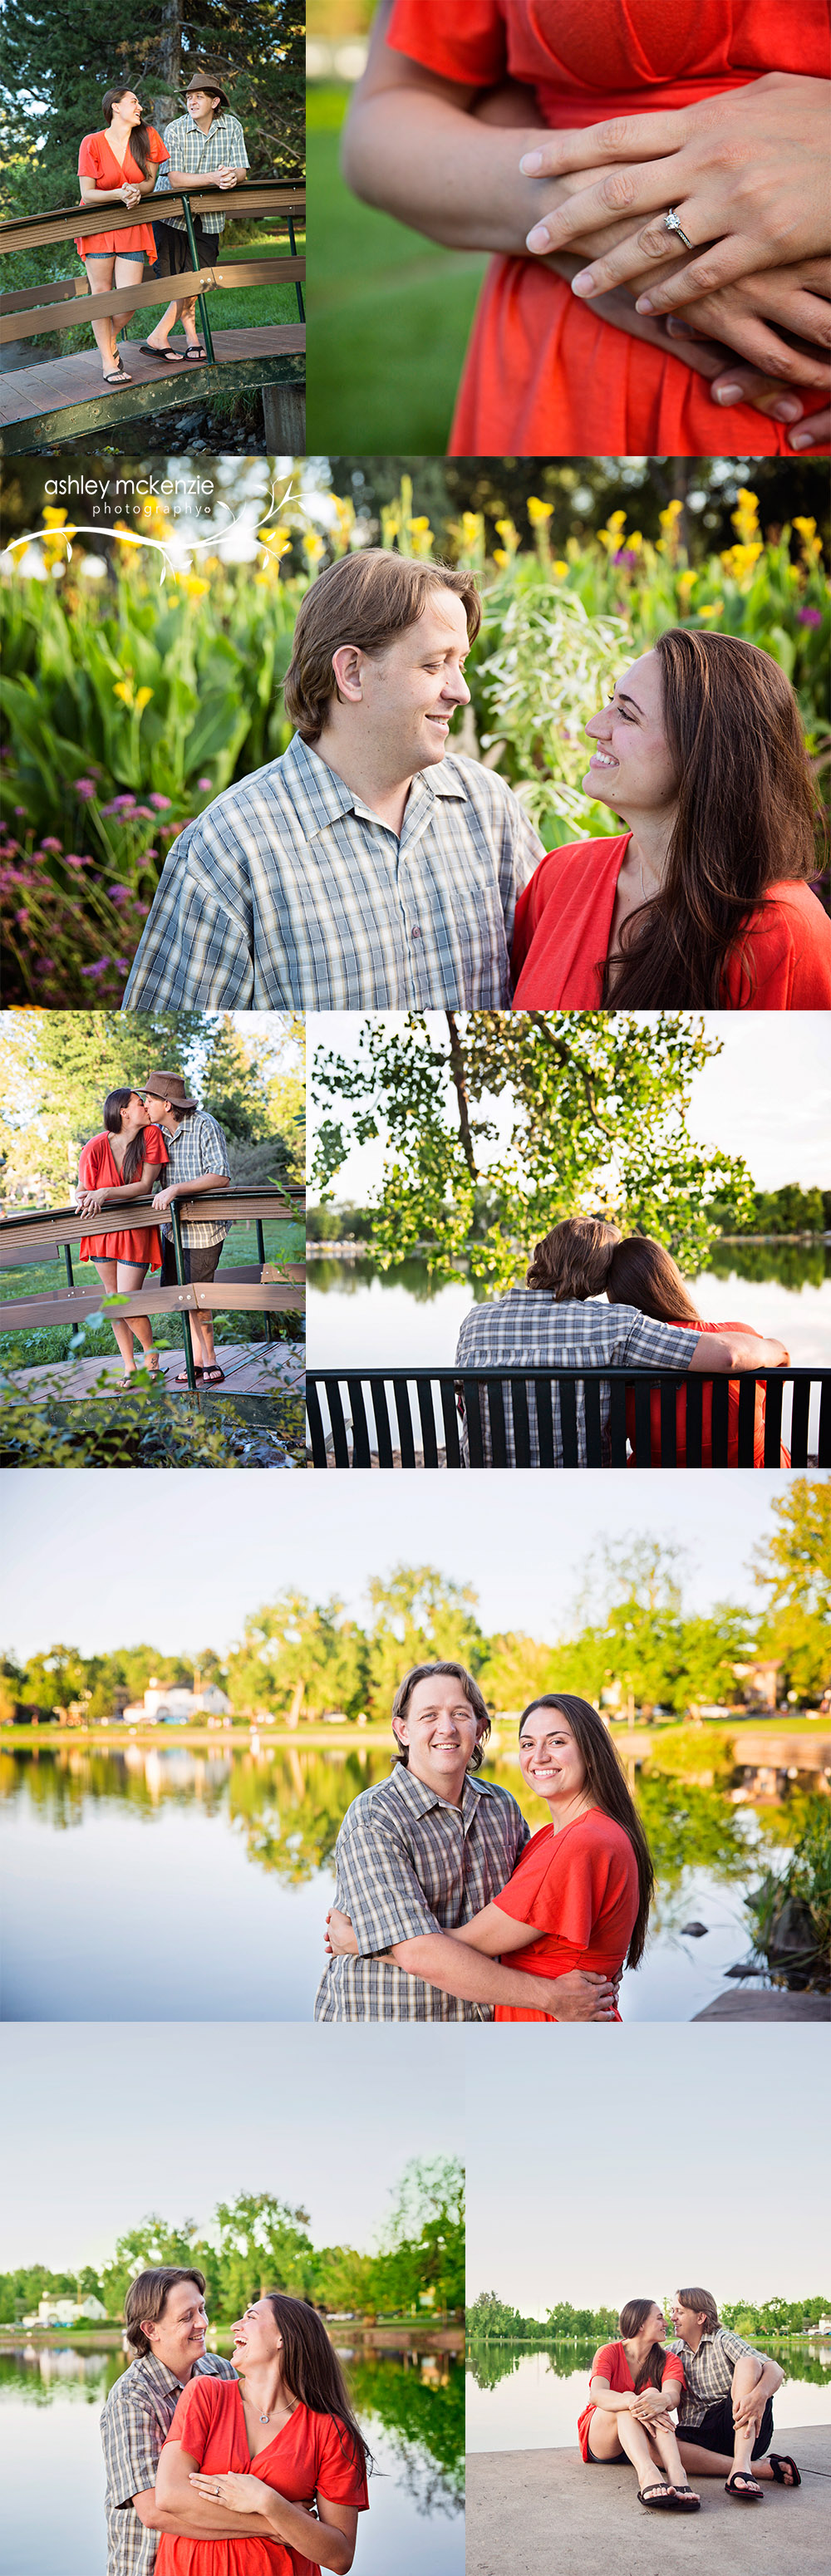 Engagement Photography by Ashley McKenzie Photography at Washington Park in Denver, CO